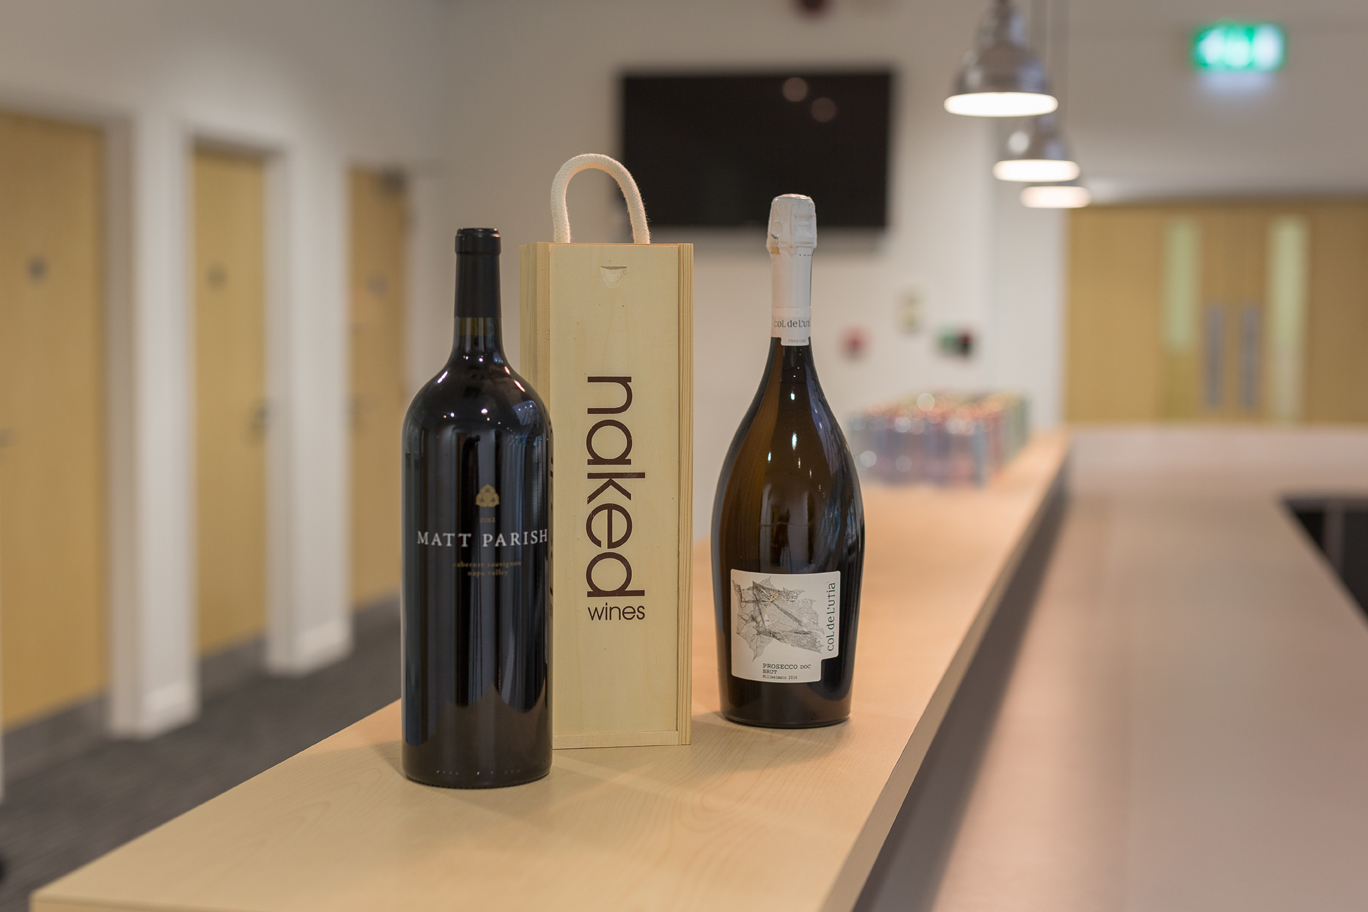 Latest wines from Naked Wines to try - Decanter